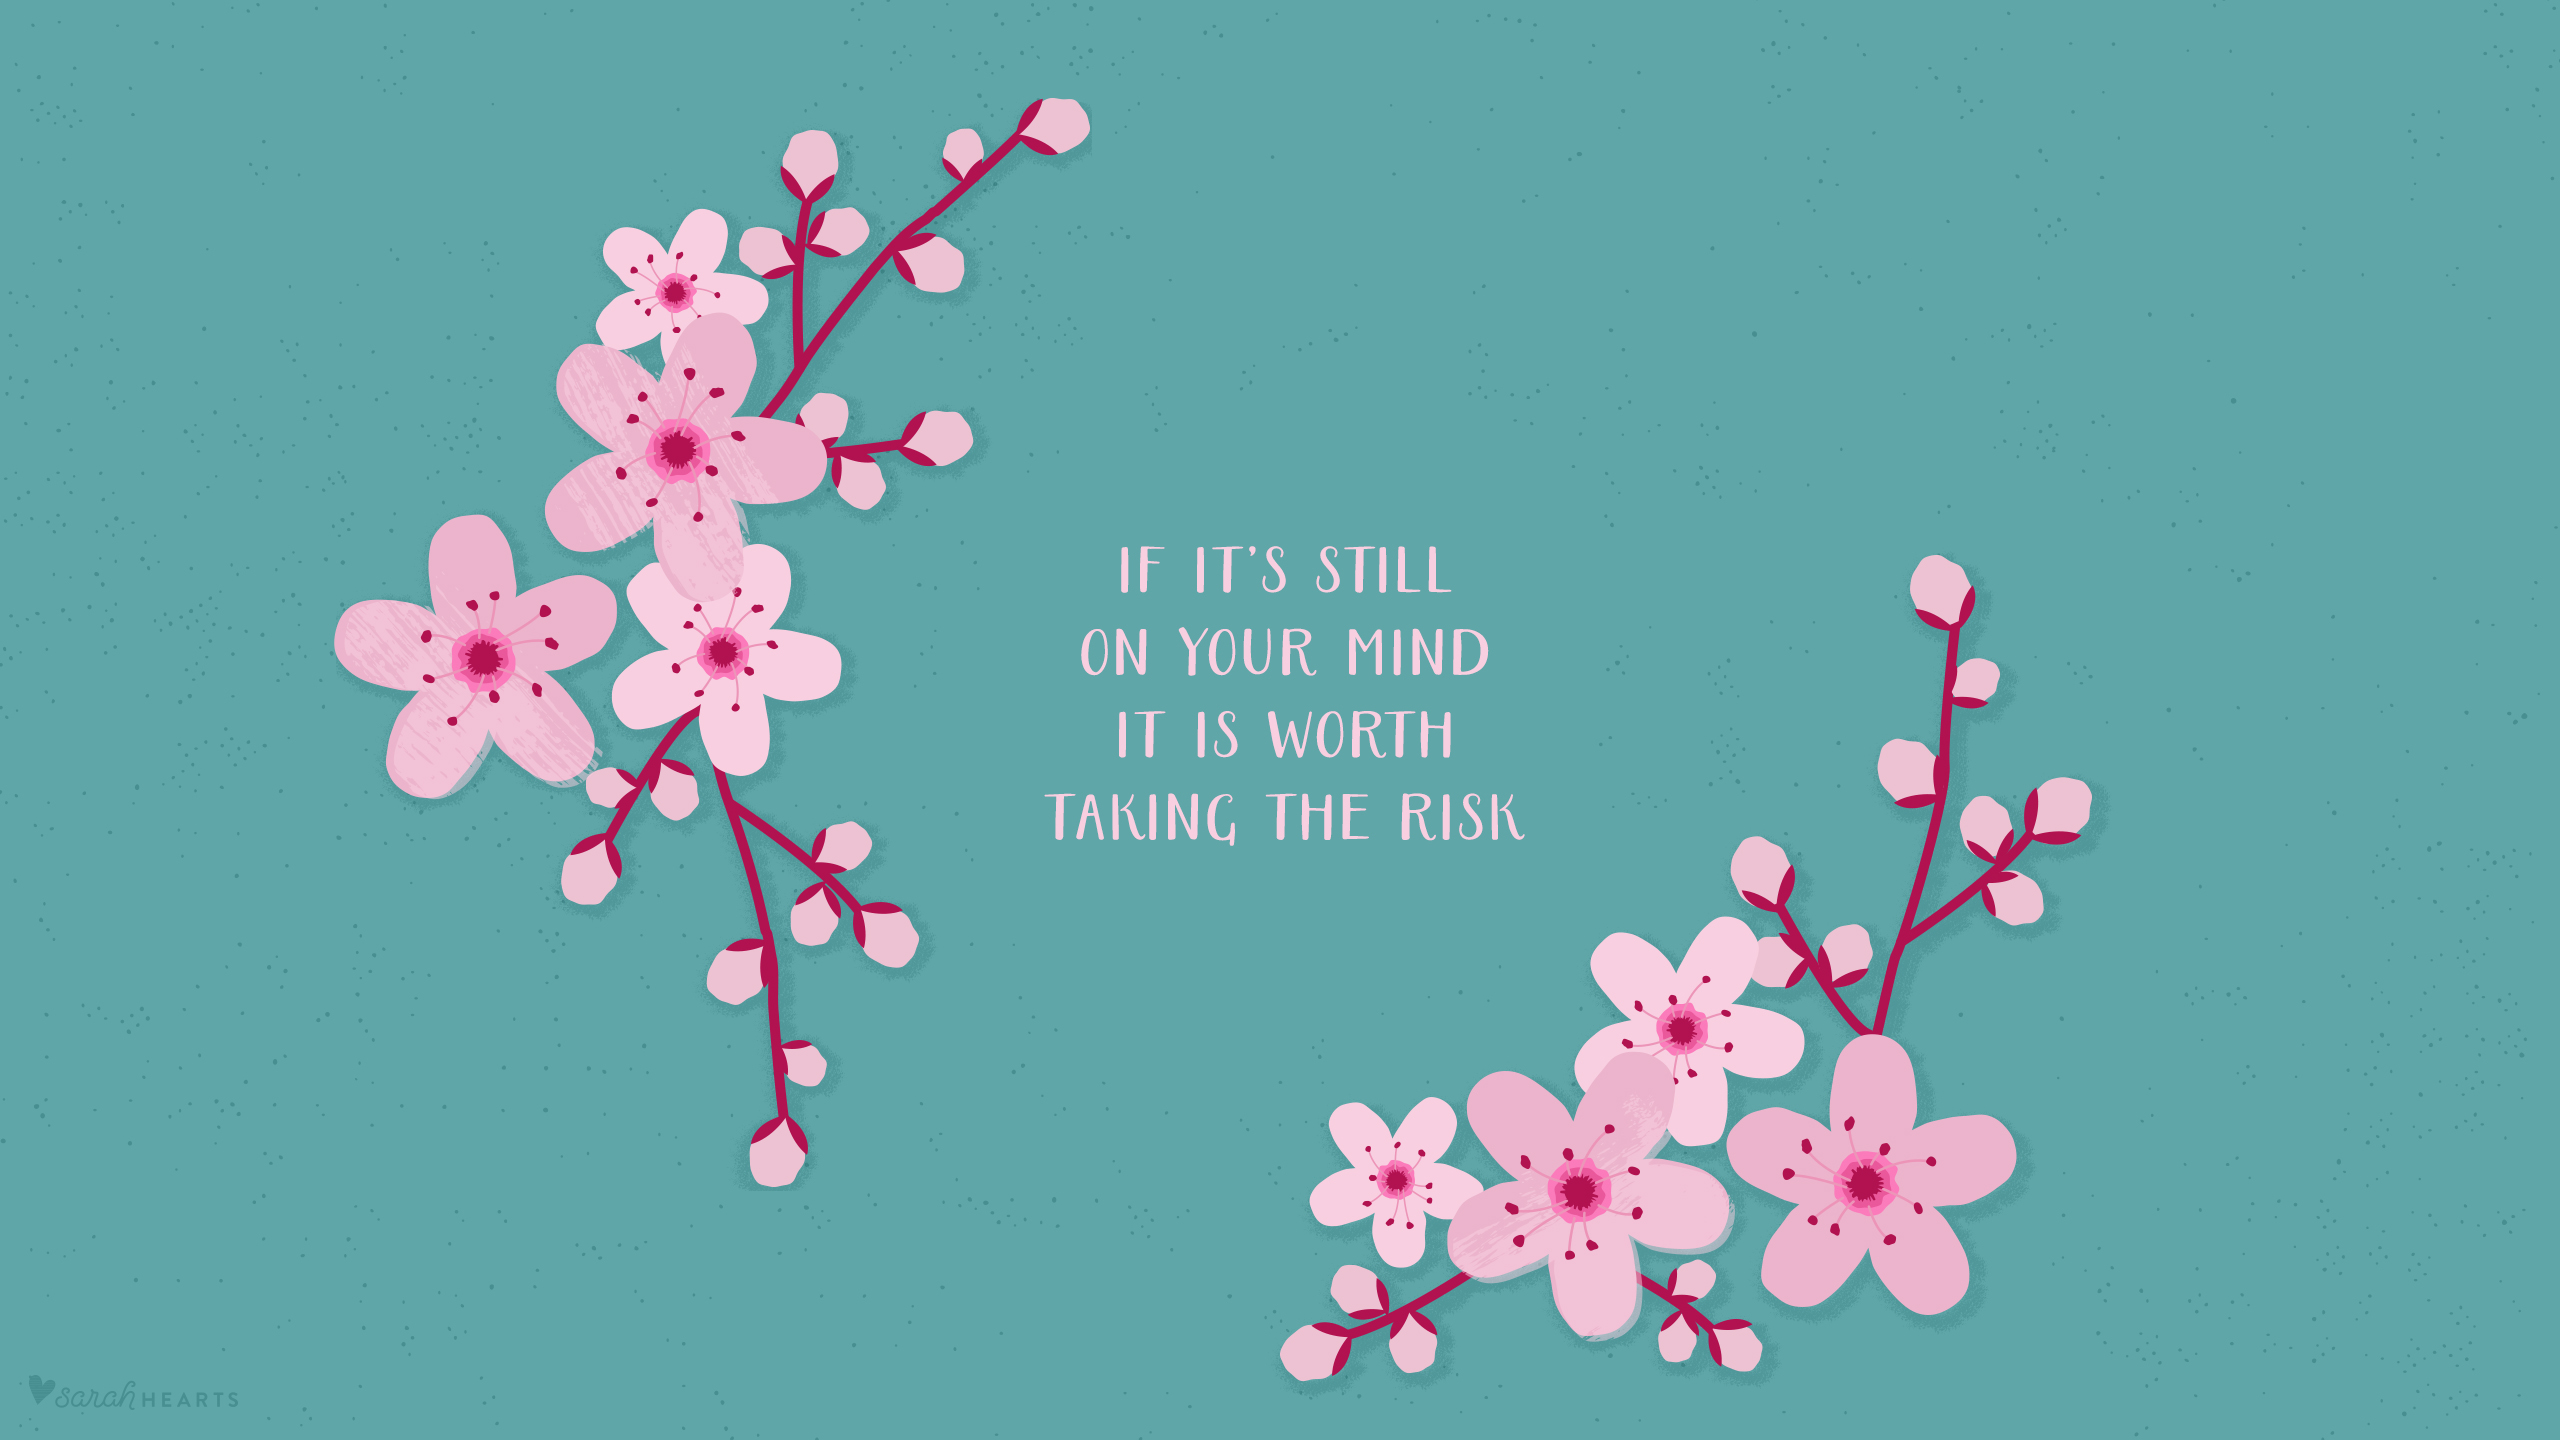 Encouraging Quotes Wallpaper Free Download March 2016 Cherry Blossom Calendar Wallpaper Sarah Hearts